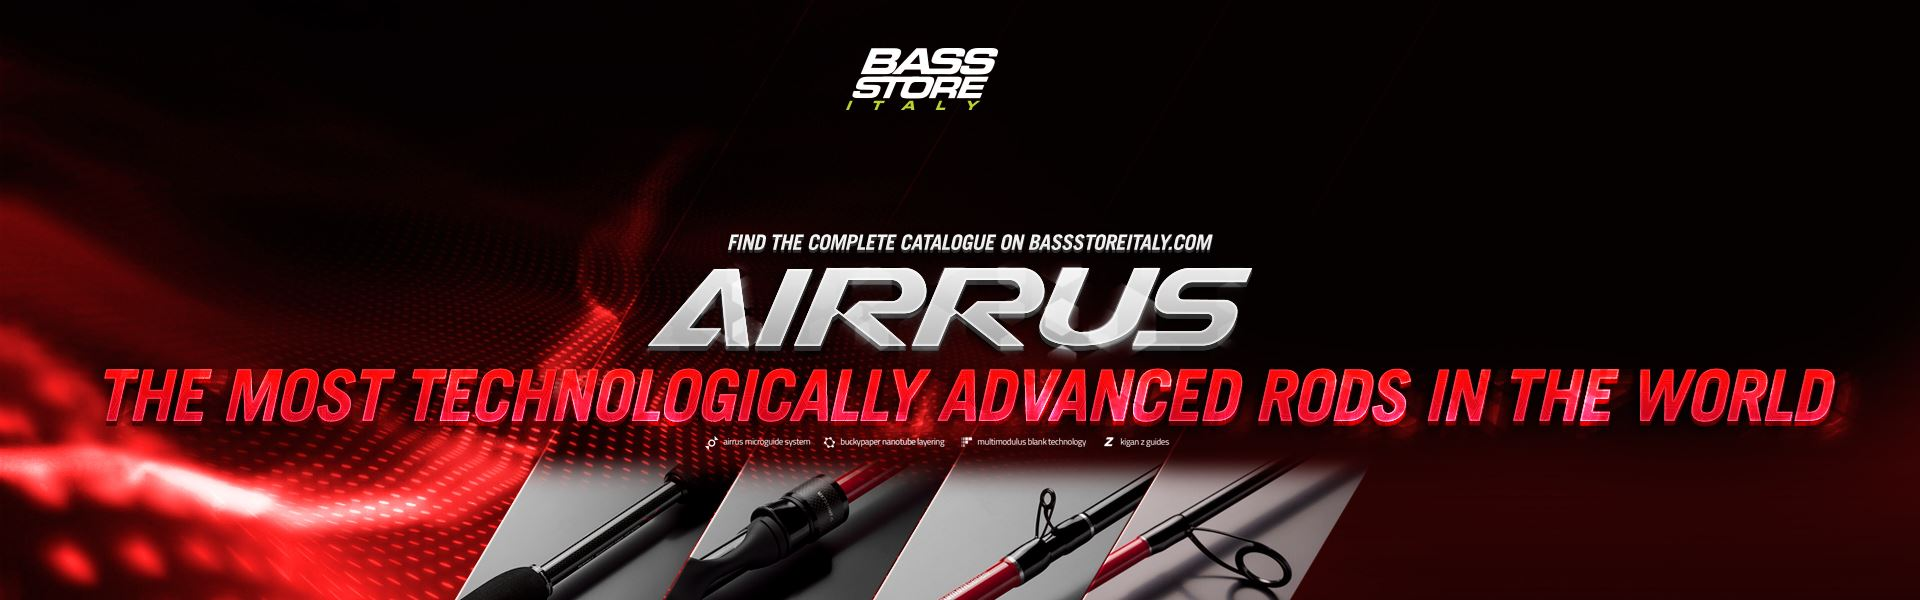 Airrus, spinning, casting, casting rods, spinning rods, lurefishing, saltwater fishing, spigola, canne da spigola, canne da bass, bass fishing, trout fishing, area game